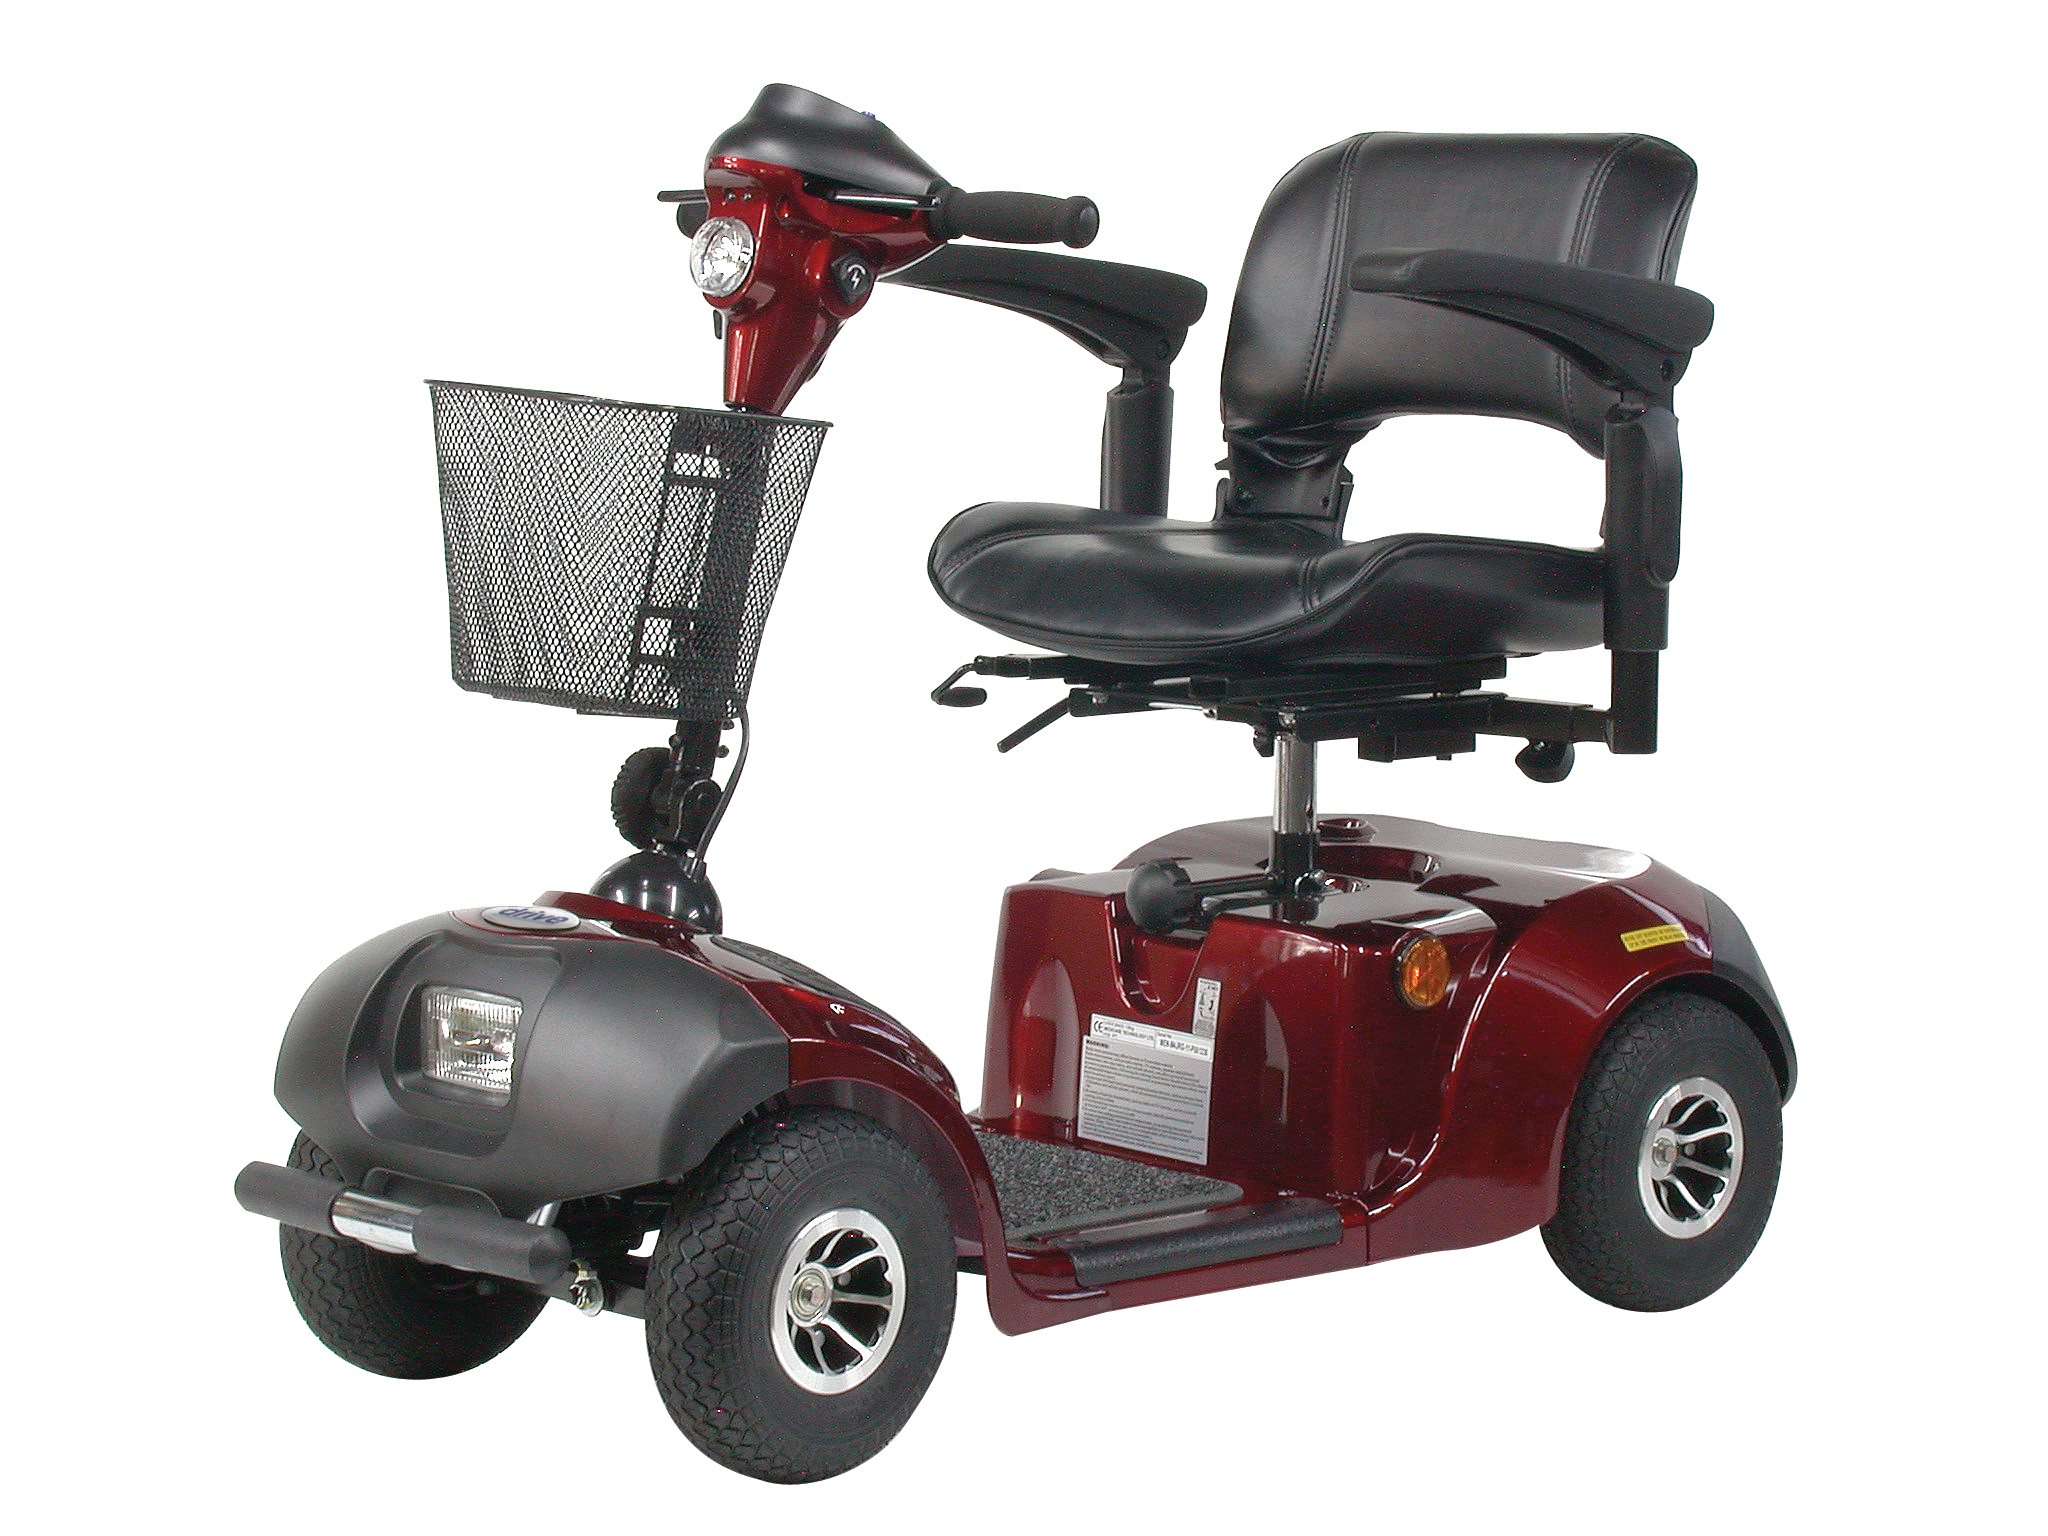 Drive Daytona 4 GT Medium Sized 4 Wheel Scooter with Padded Seat